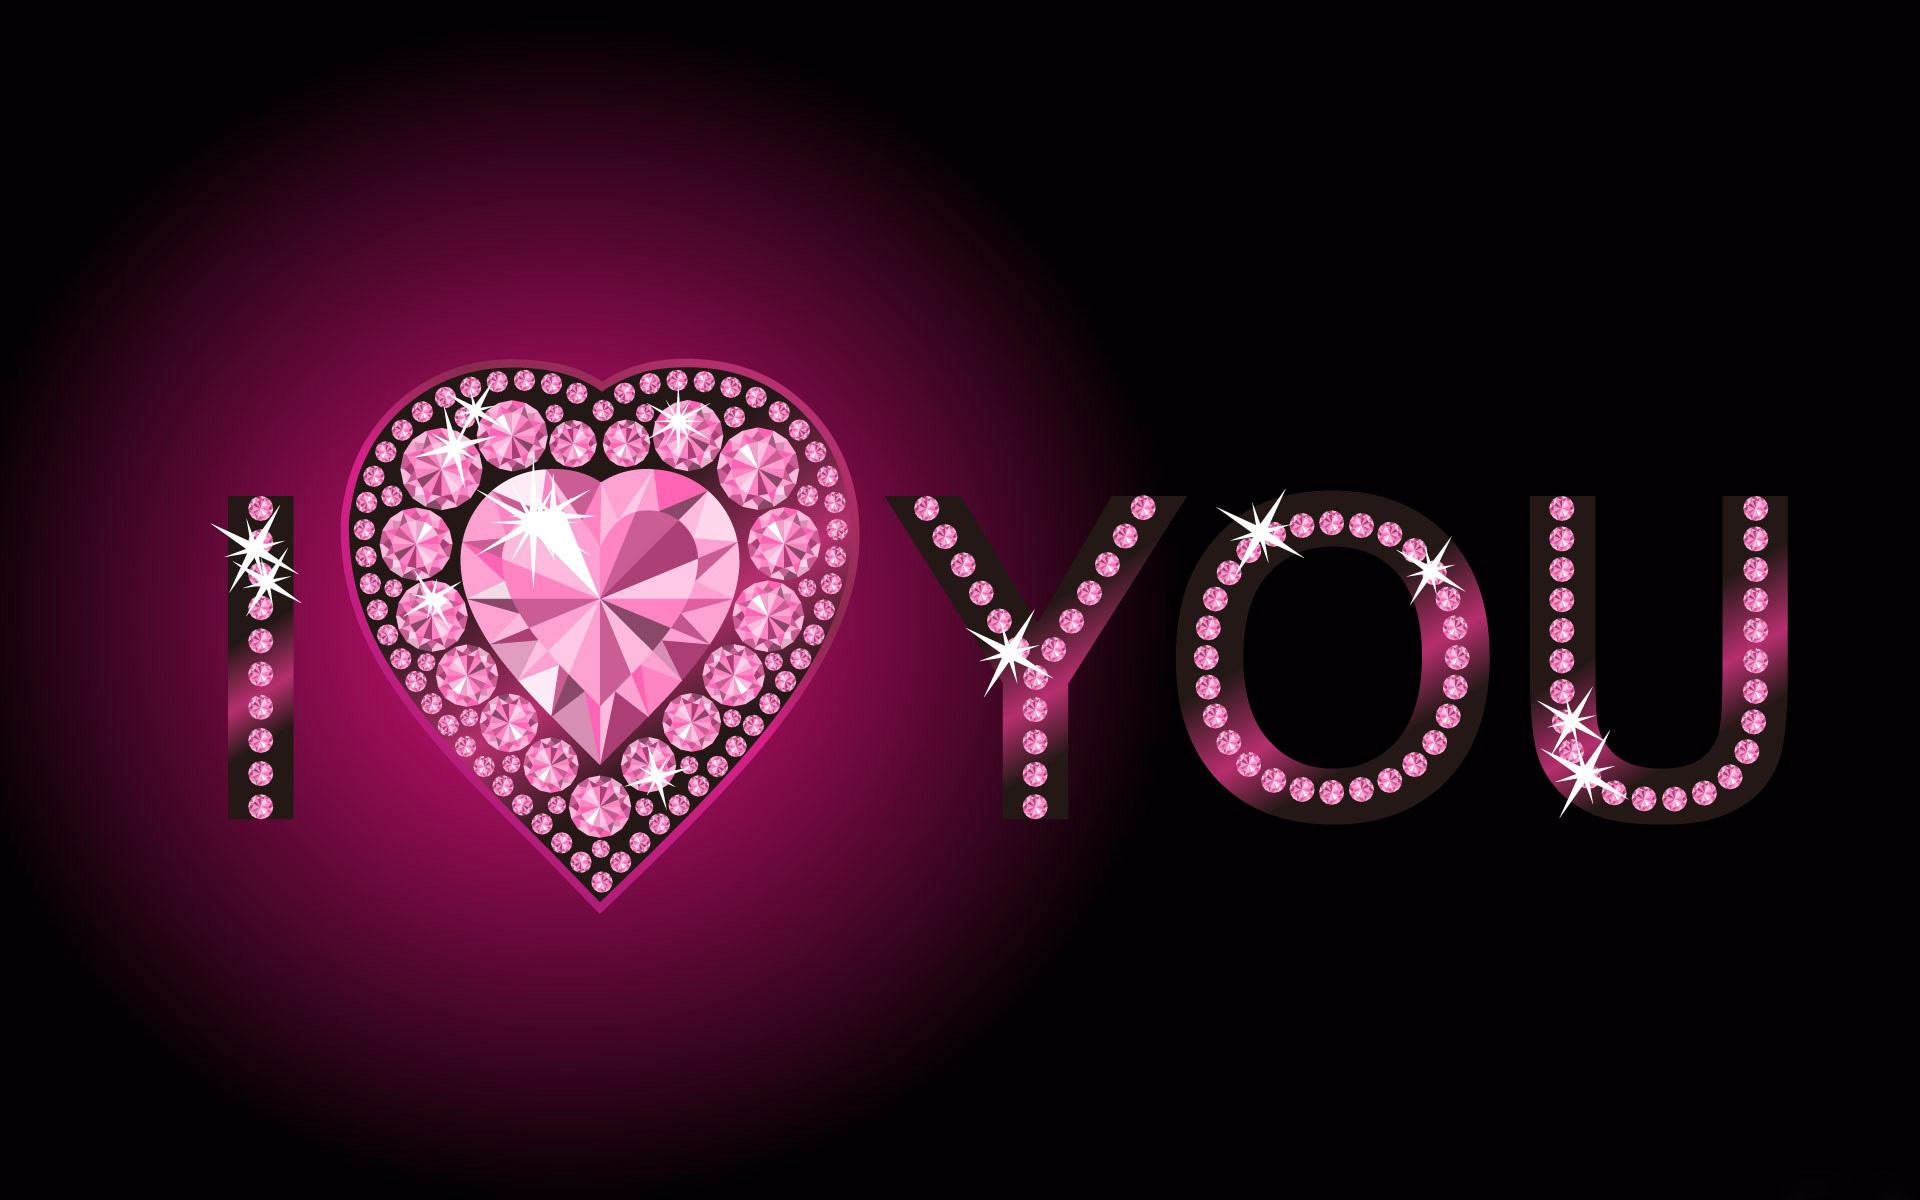 Res: 1920x1200, Love Word Cute Love Wallpaper To Say I Love You - HD Wallpapers